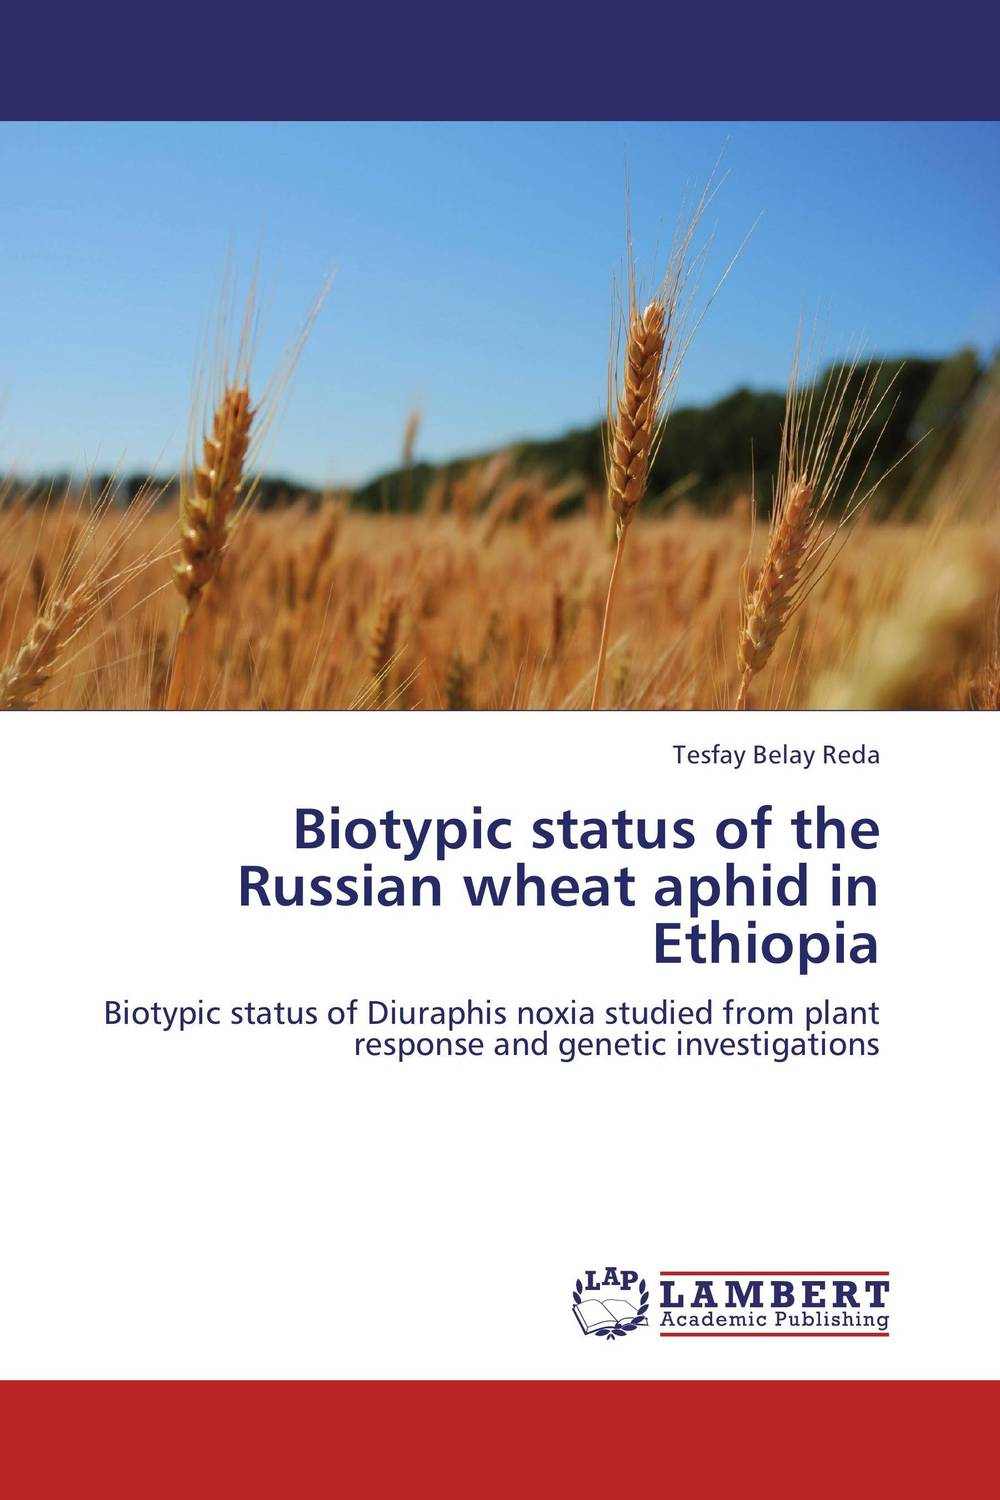 Biotypic status of the Russian wheat aphid in Ethiopia butterflies in the barley